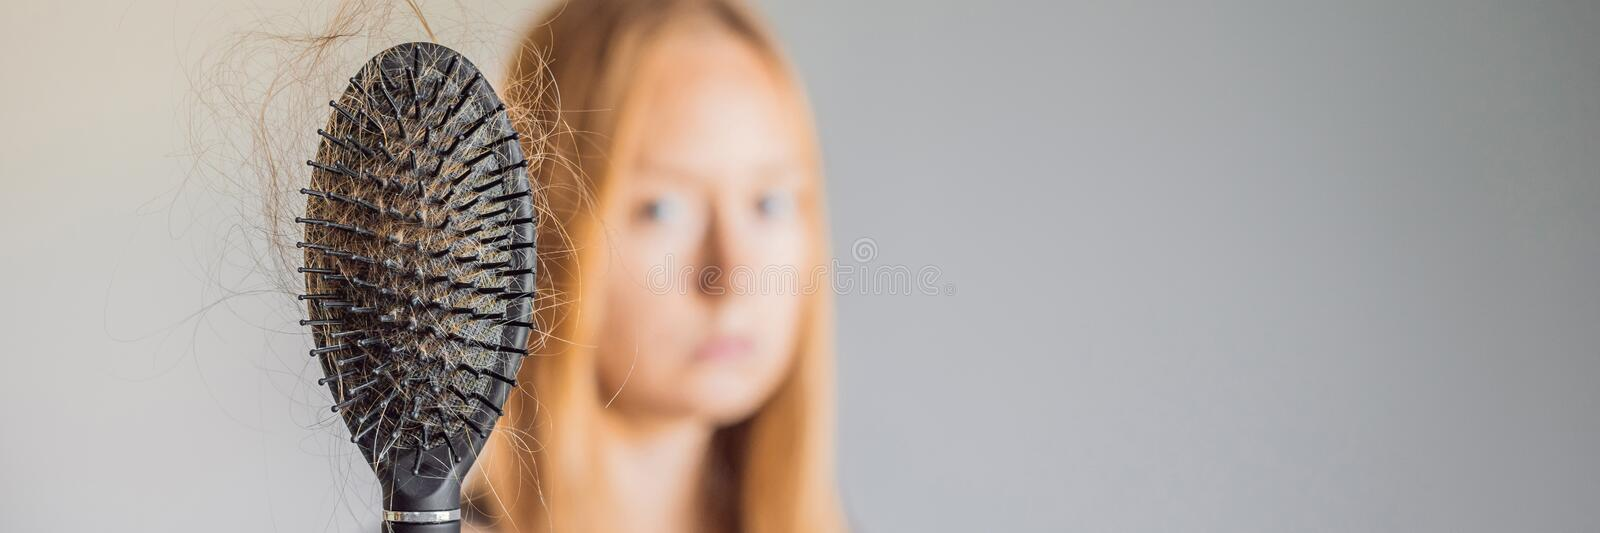 Hair loss in women concept. A lot of lost hair on the comb BANNER, LONG FORMAT. Hair loss in woman concept. A lot of lost hair on the comb. BANNER, LONG FORMAT stock photo